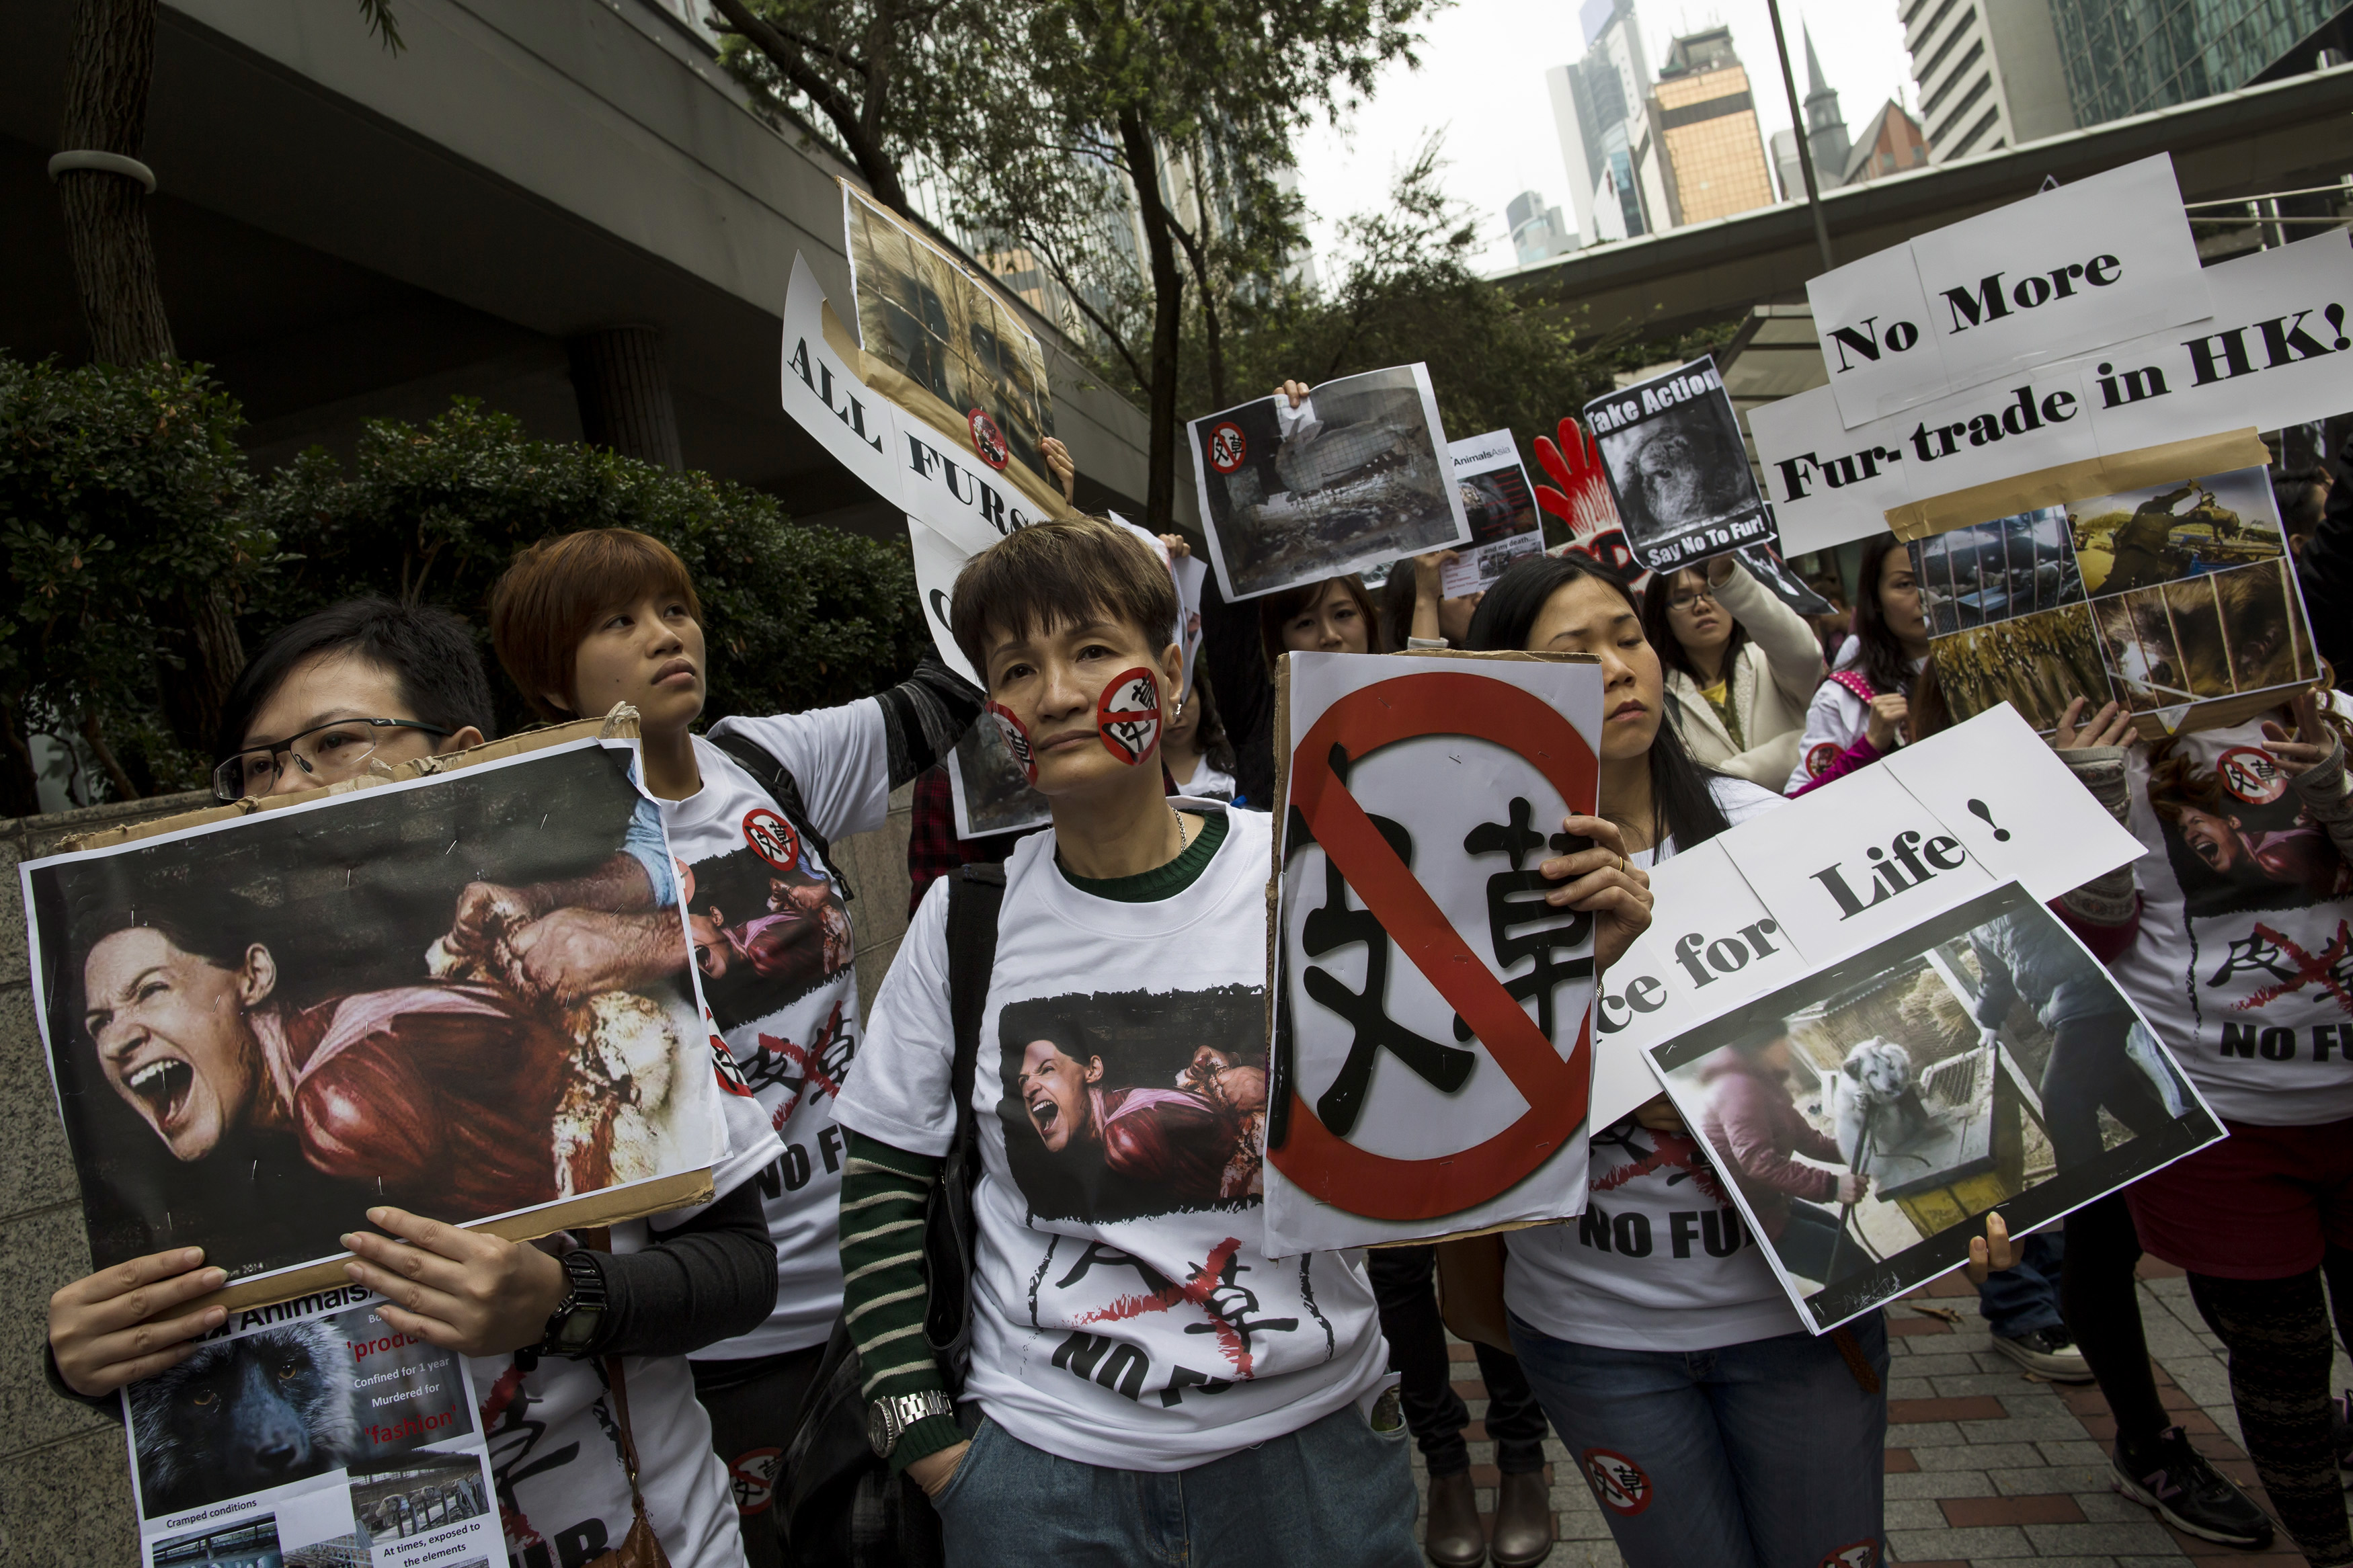 Members of animal rights groups march during a protest against the fur industry, outside the venue for Hong Kong International Fur and Fashion Fair in Hong Kong February 28, 2015. The annual Hong Kong International Fur and Fashion Fair is the world's largest fur fashion event, which brought $232 million (HK$1.8 billion) in exports in 2014, with 75 per cent of the world's fur and fur garments re-exported through the city, according to the Hong Kong Fur Federation. REUTERS/Tyrone Siu (CHINA - Tags: ANIMALS BUSINESS ENVIRONMENT FASHION CIVIL UNREST) - GM1EB2S1FFR01